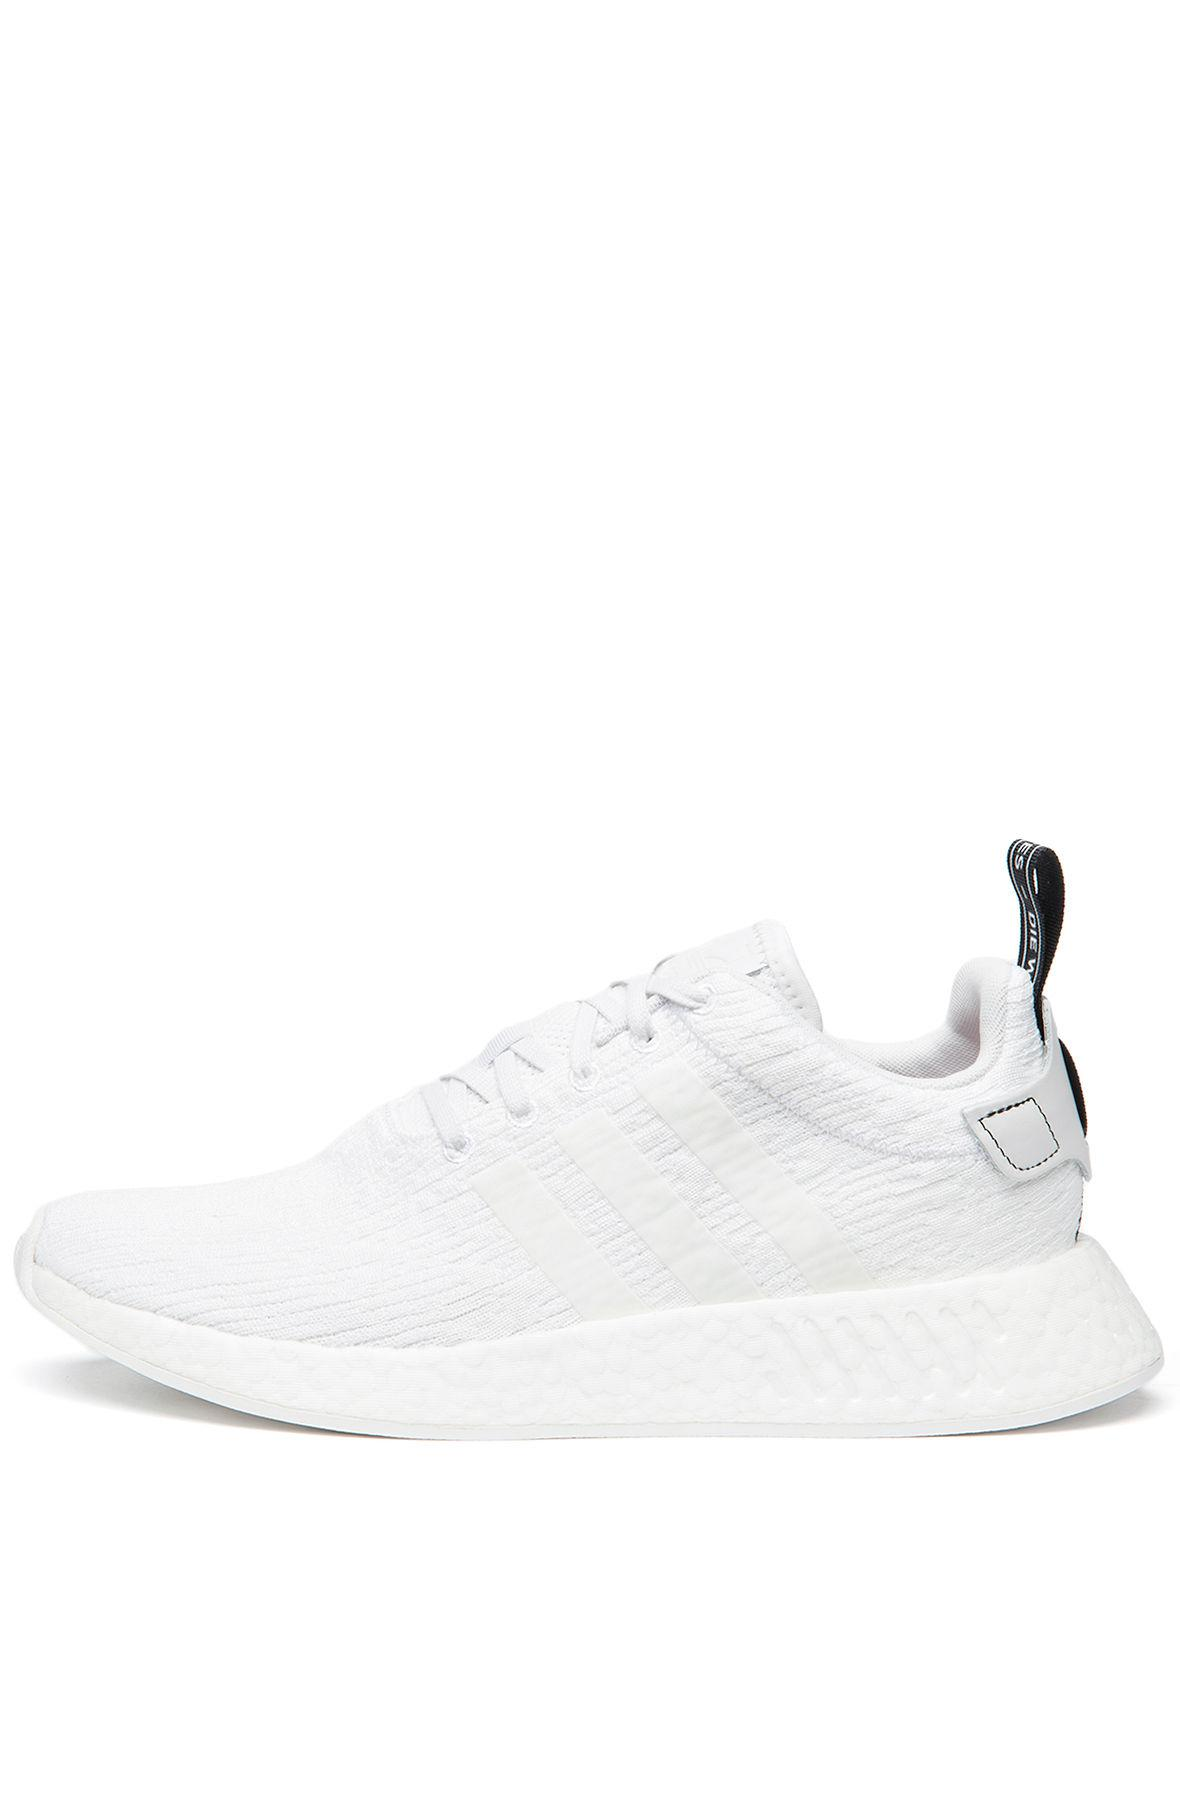 6890bda68cdcb Lyst - Adidas The Nmd r2 In Crystal White And Coral Black in White